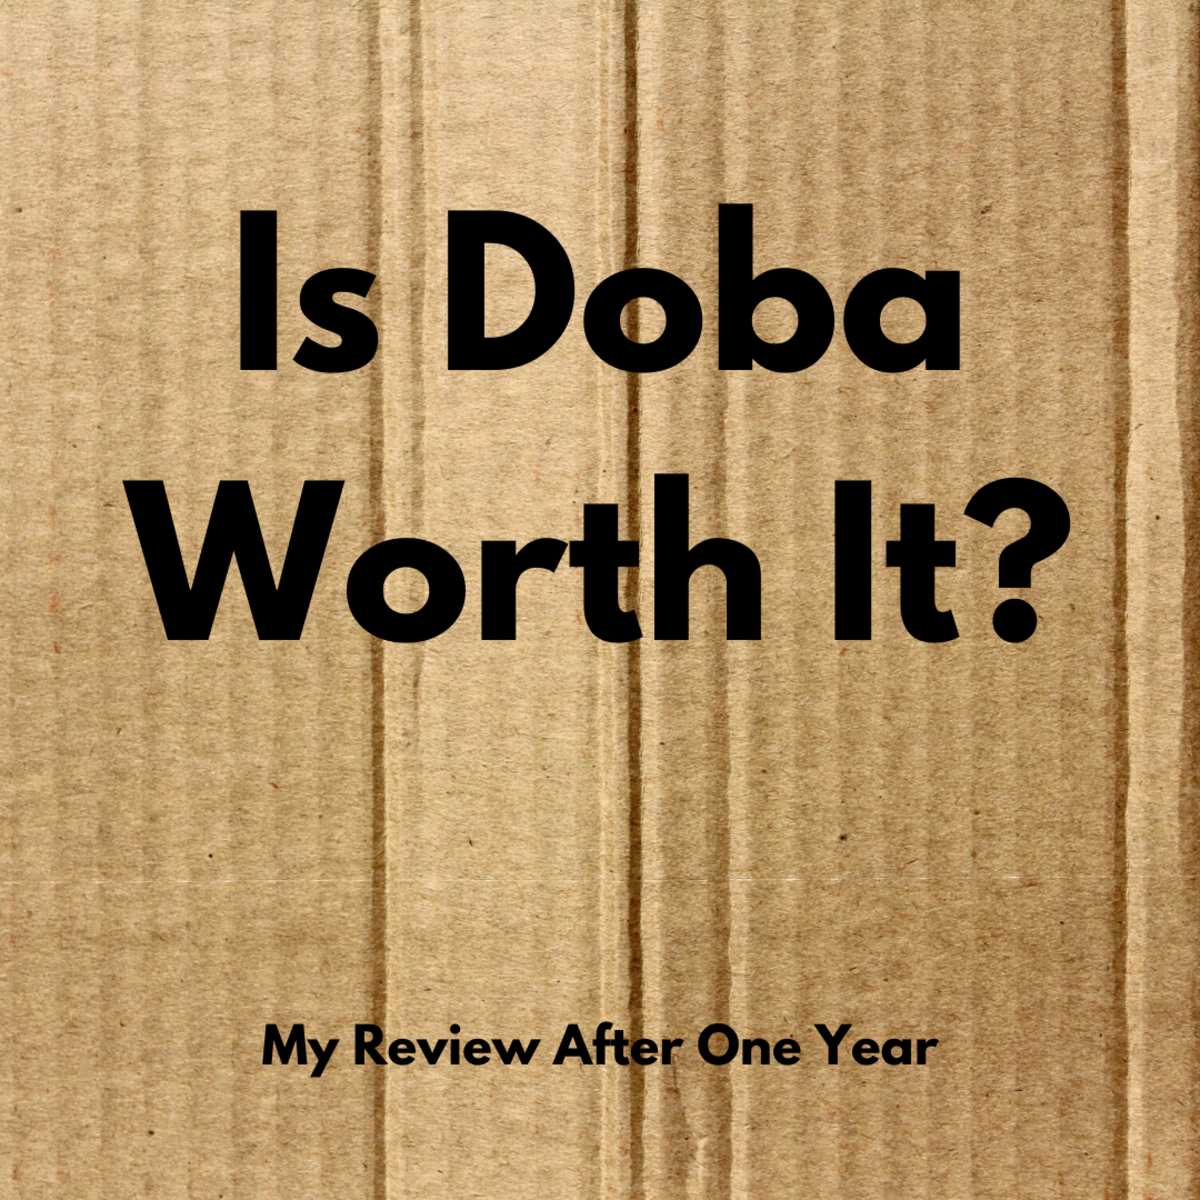 Read a detailed review of Doba, including their pricing, shipping, and customer service.